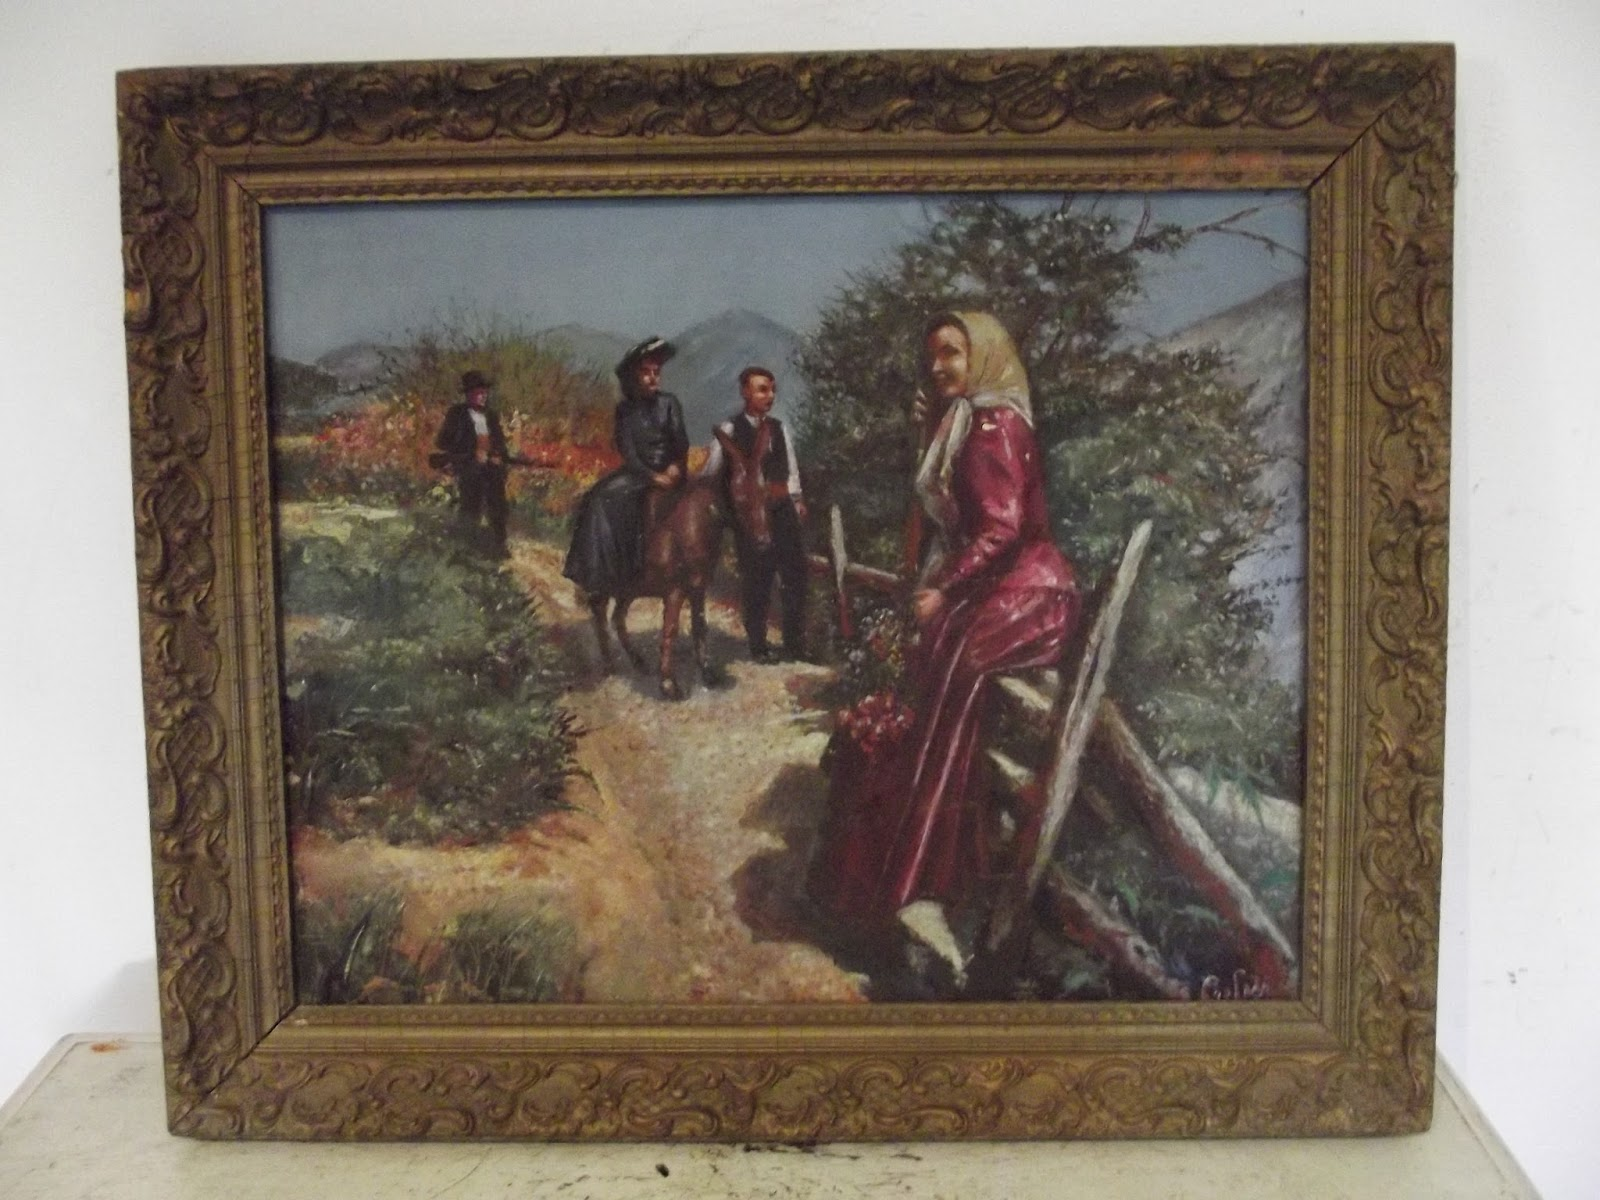 Details About Antique Painting Provencal Promenade En Foret Chasse Oil On Panel Signed Hsp